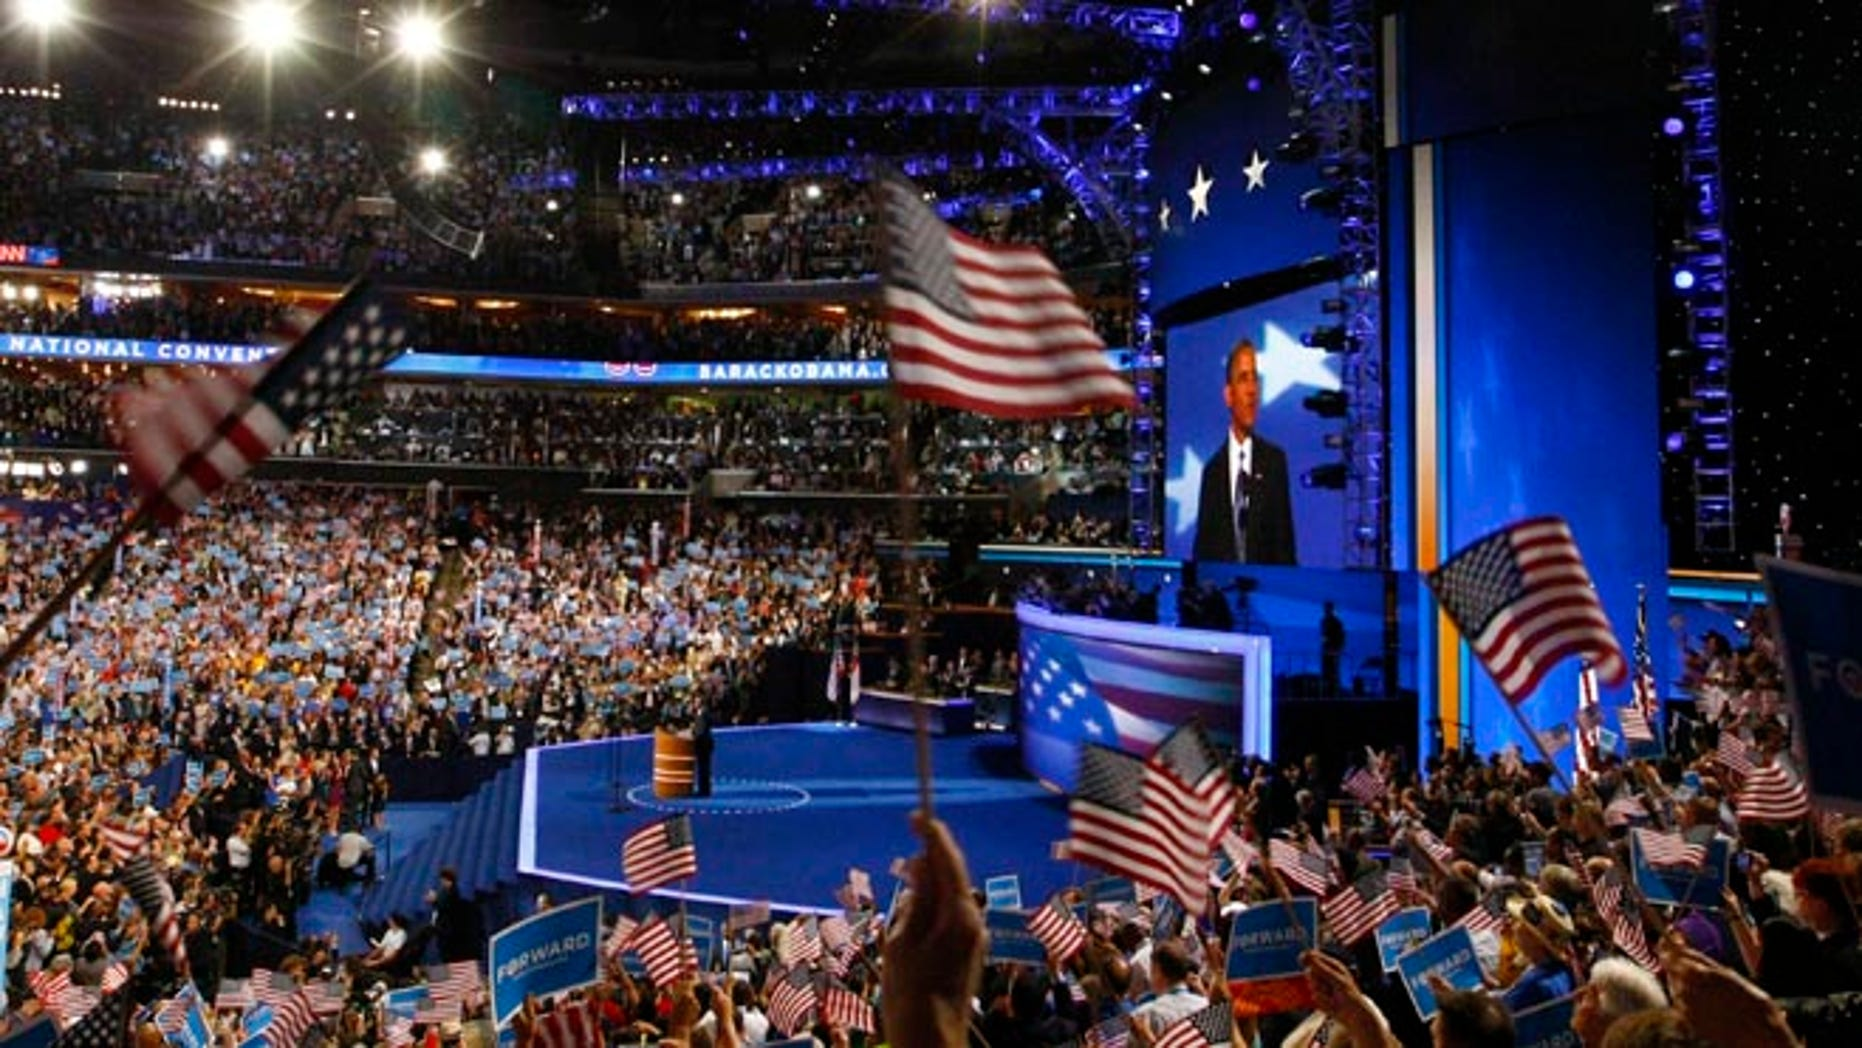 FILE: September 6, 2012: The 2012 Democratic National Convention, in Charlotte, North Carolina.